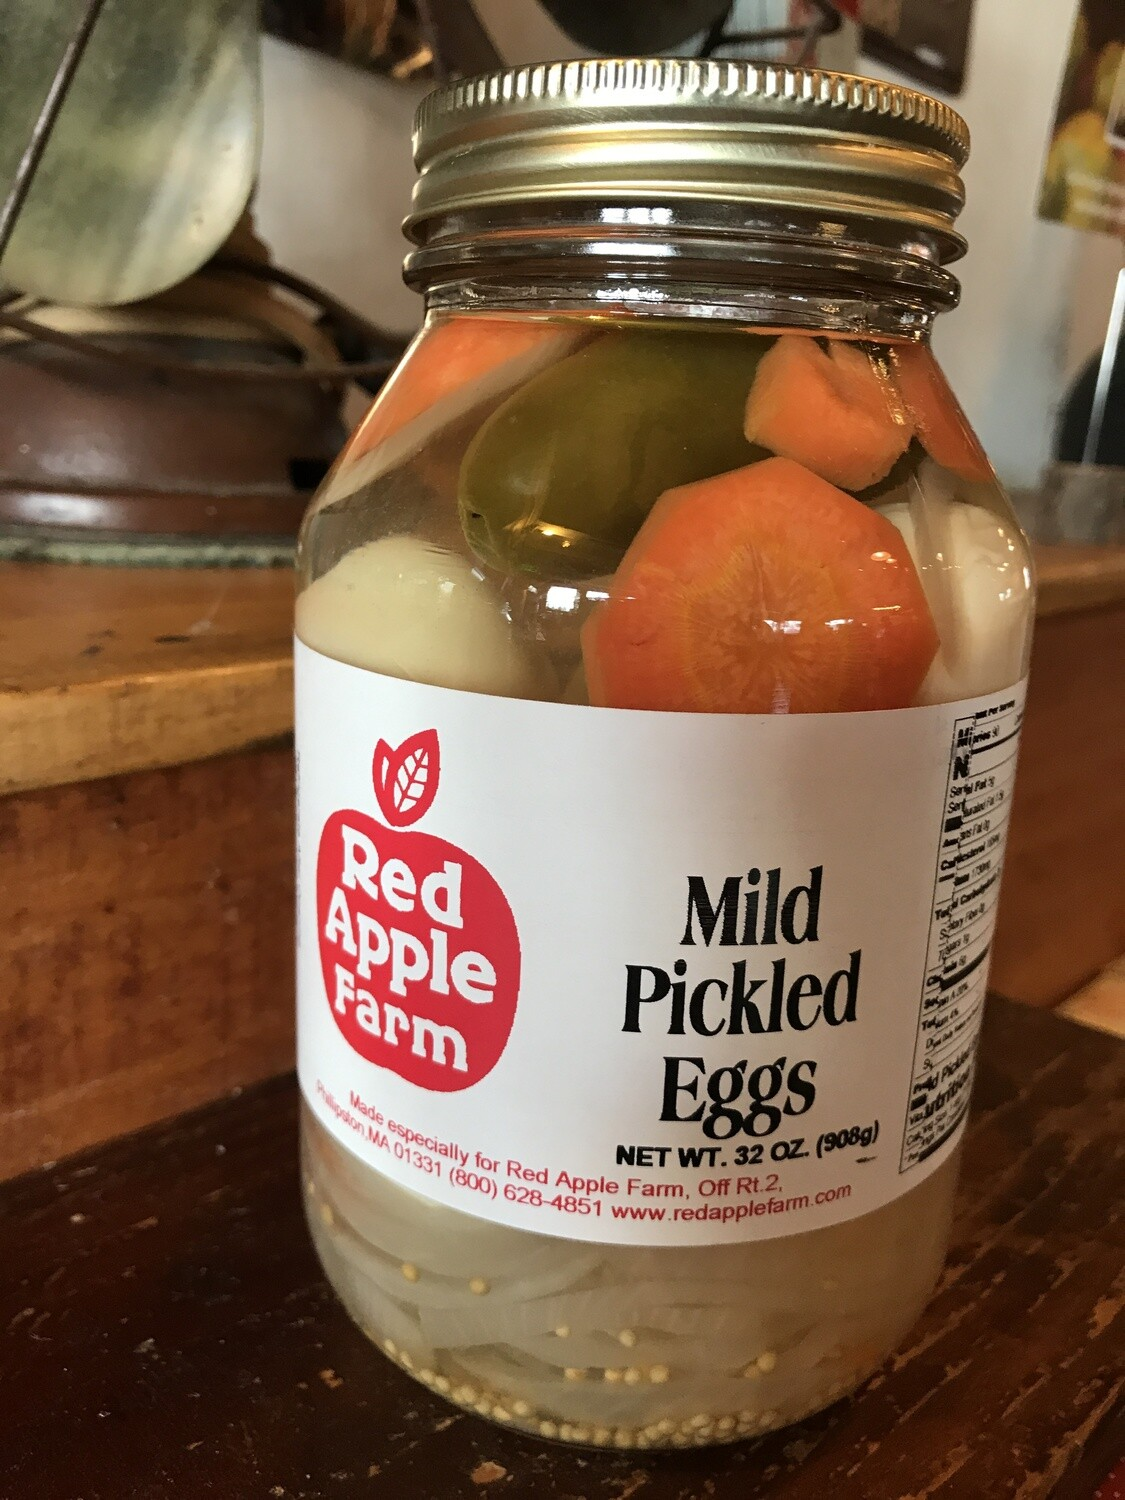 Mild Pickled Eggs 32oz